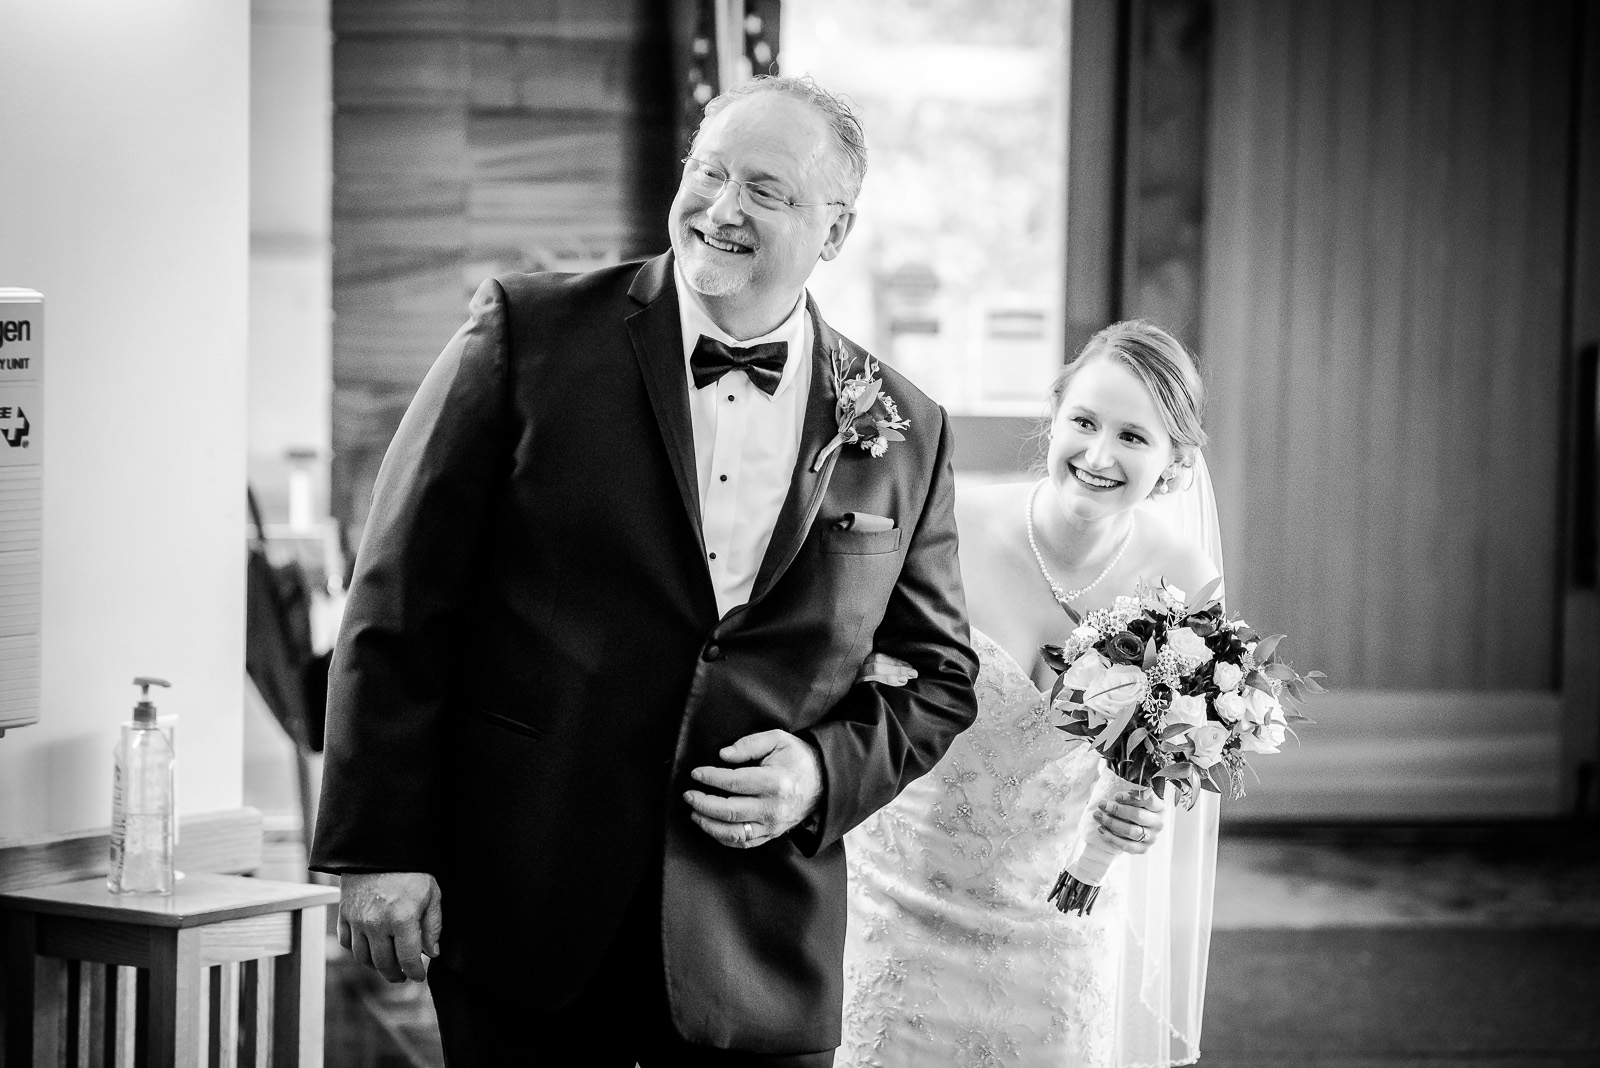 Eric_and_Christy_Photography_Blog_2018_Wed_moments-28